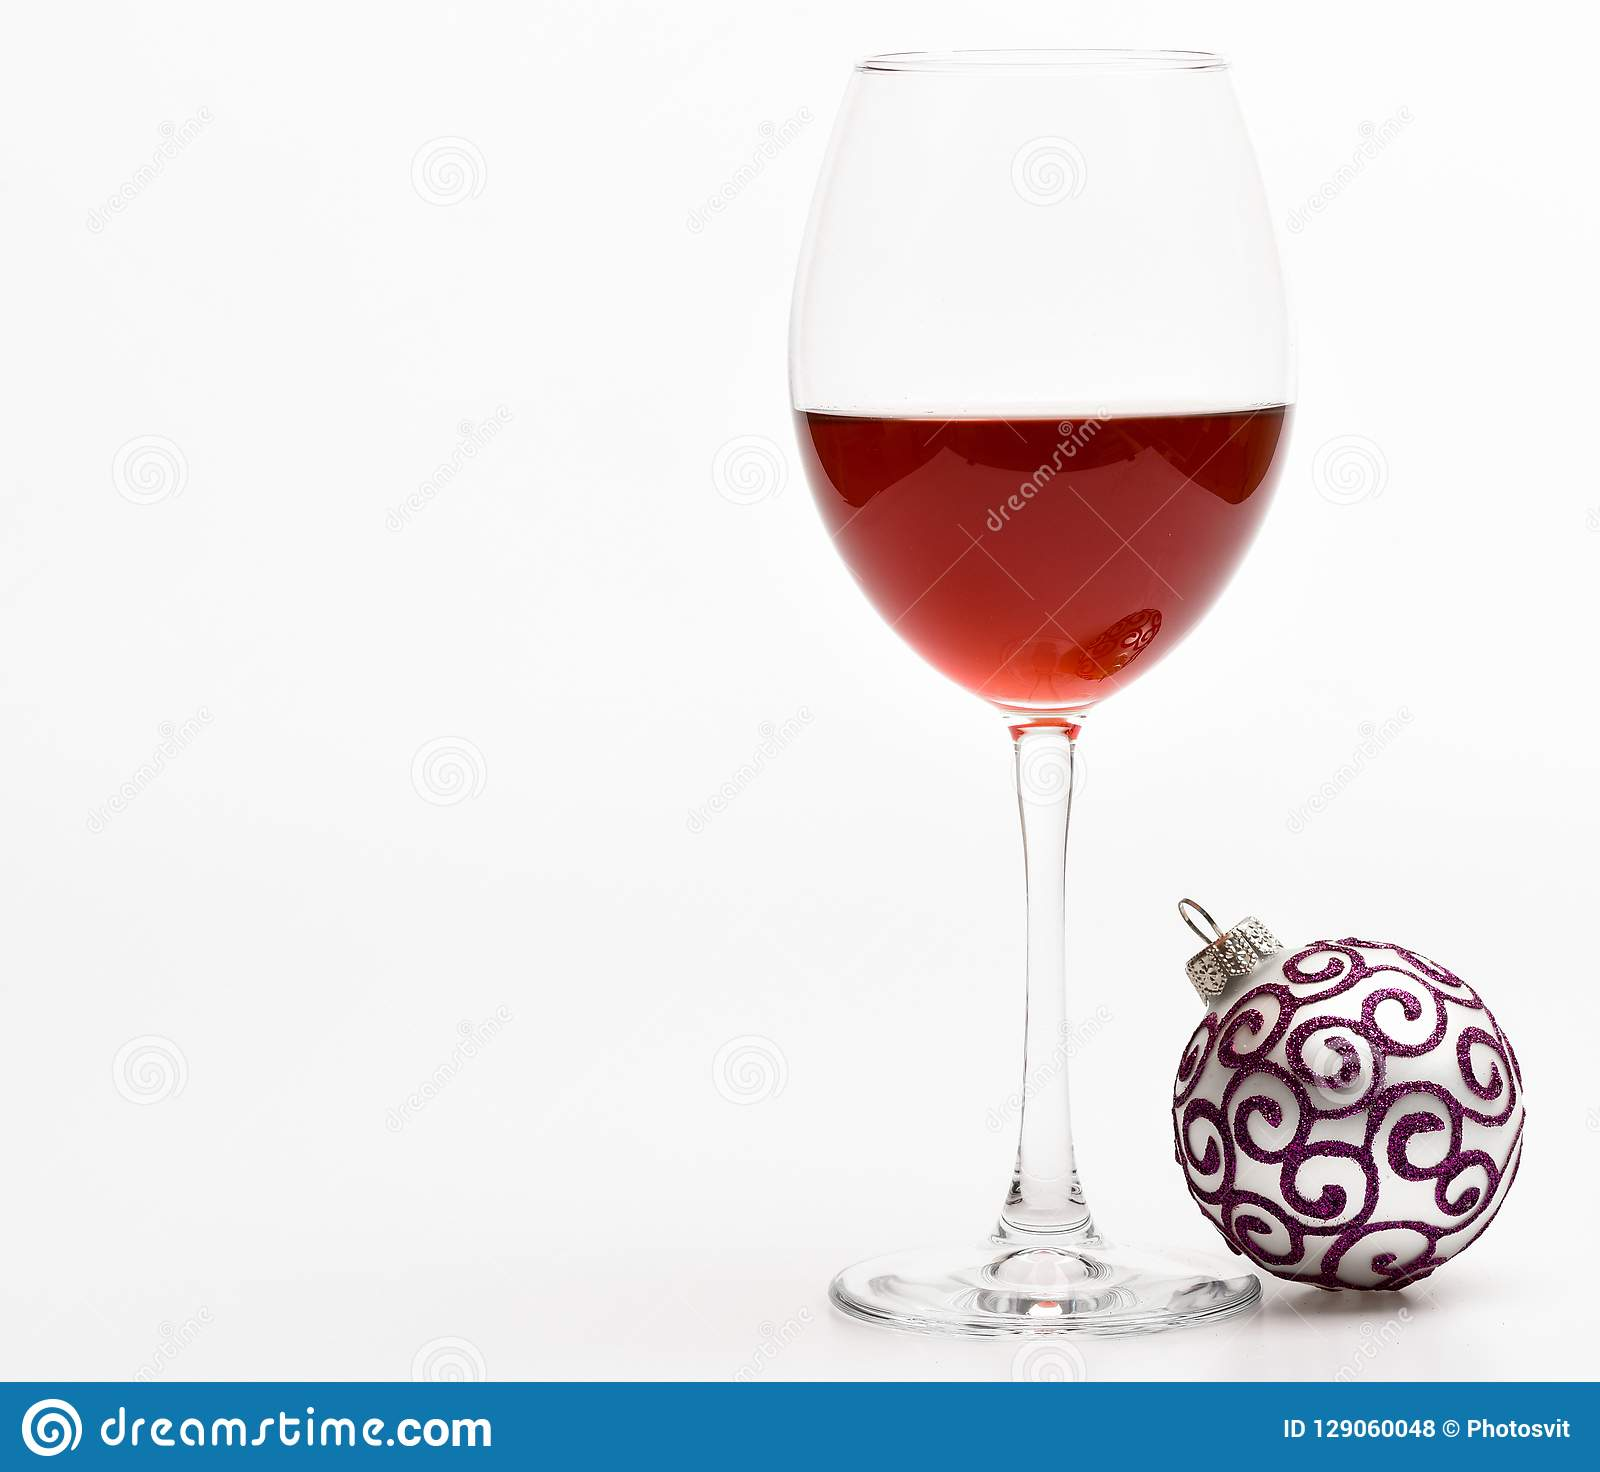 Winter celebration with alcohol drink. New year party concept. Wineglass with red liquid or wine and christmas ball